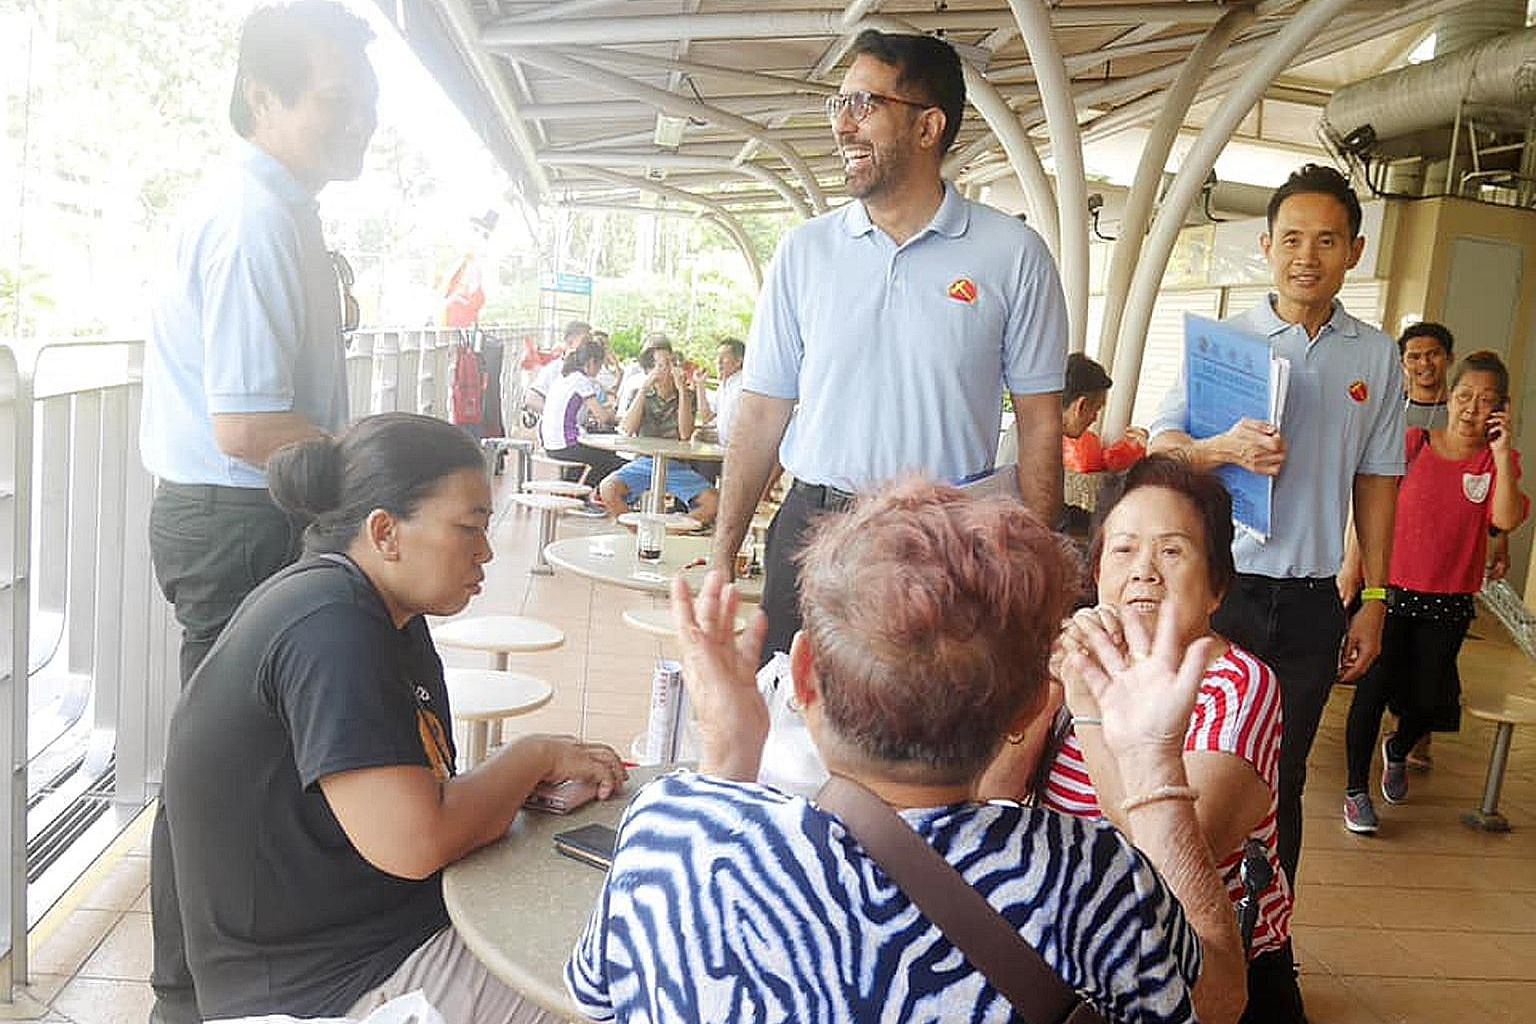 Workers' Party chief Pritam Singh (centre) and member Kenneth Foo (right) at the Eunos division of the WP-held Aljunied GRC earlier this month.